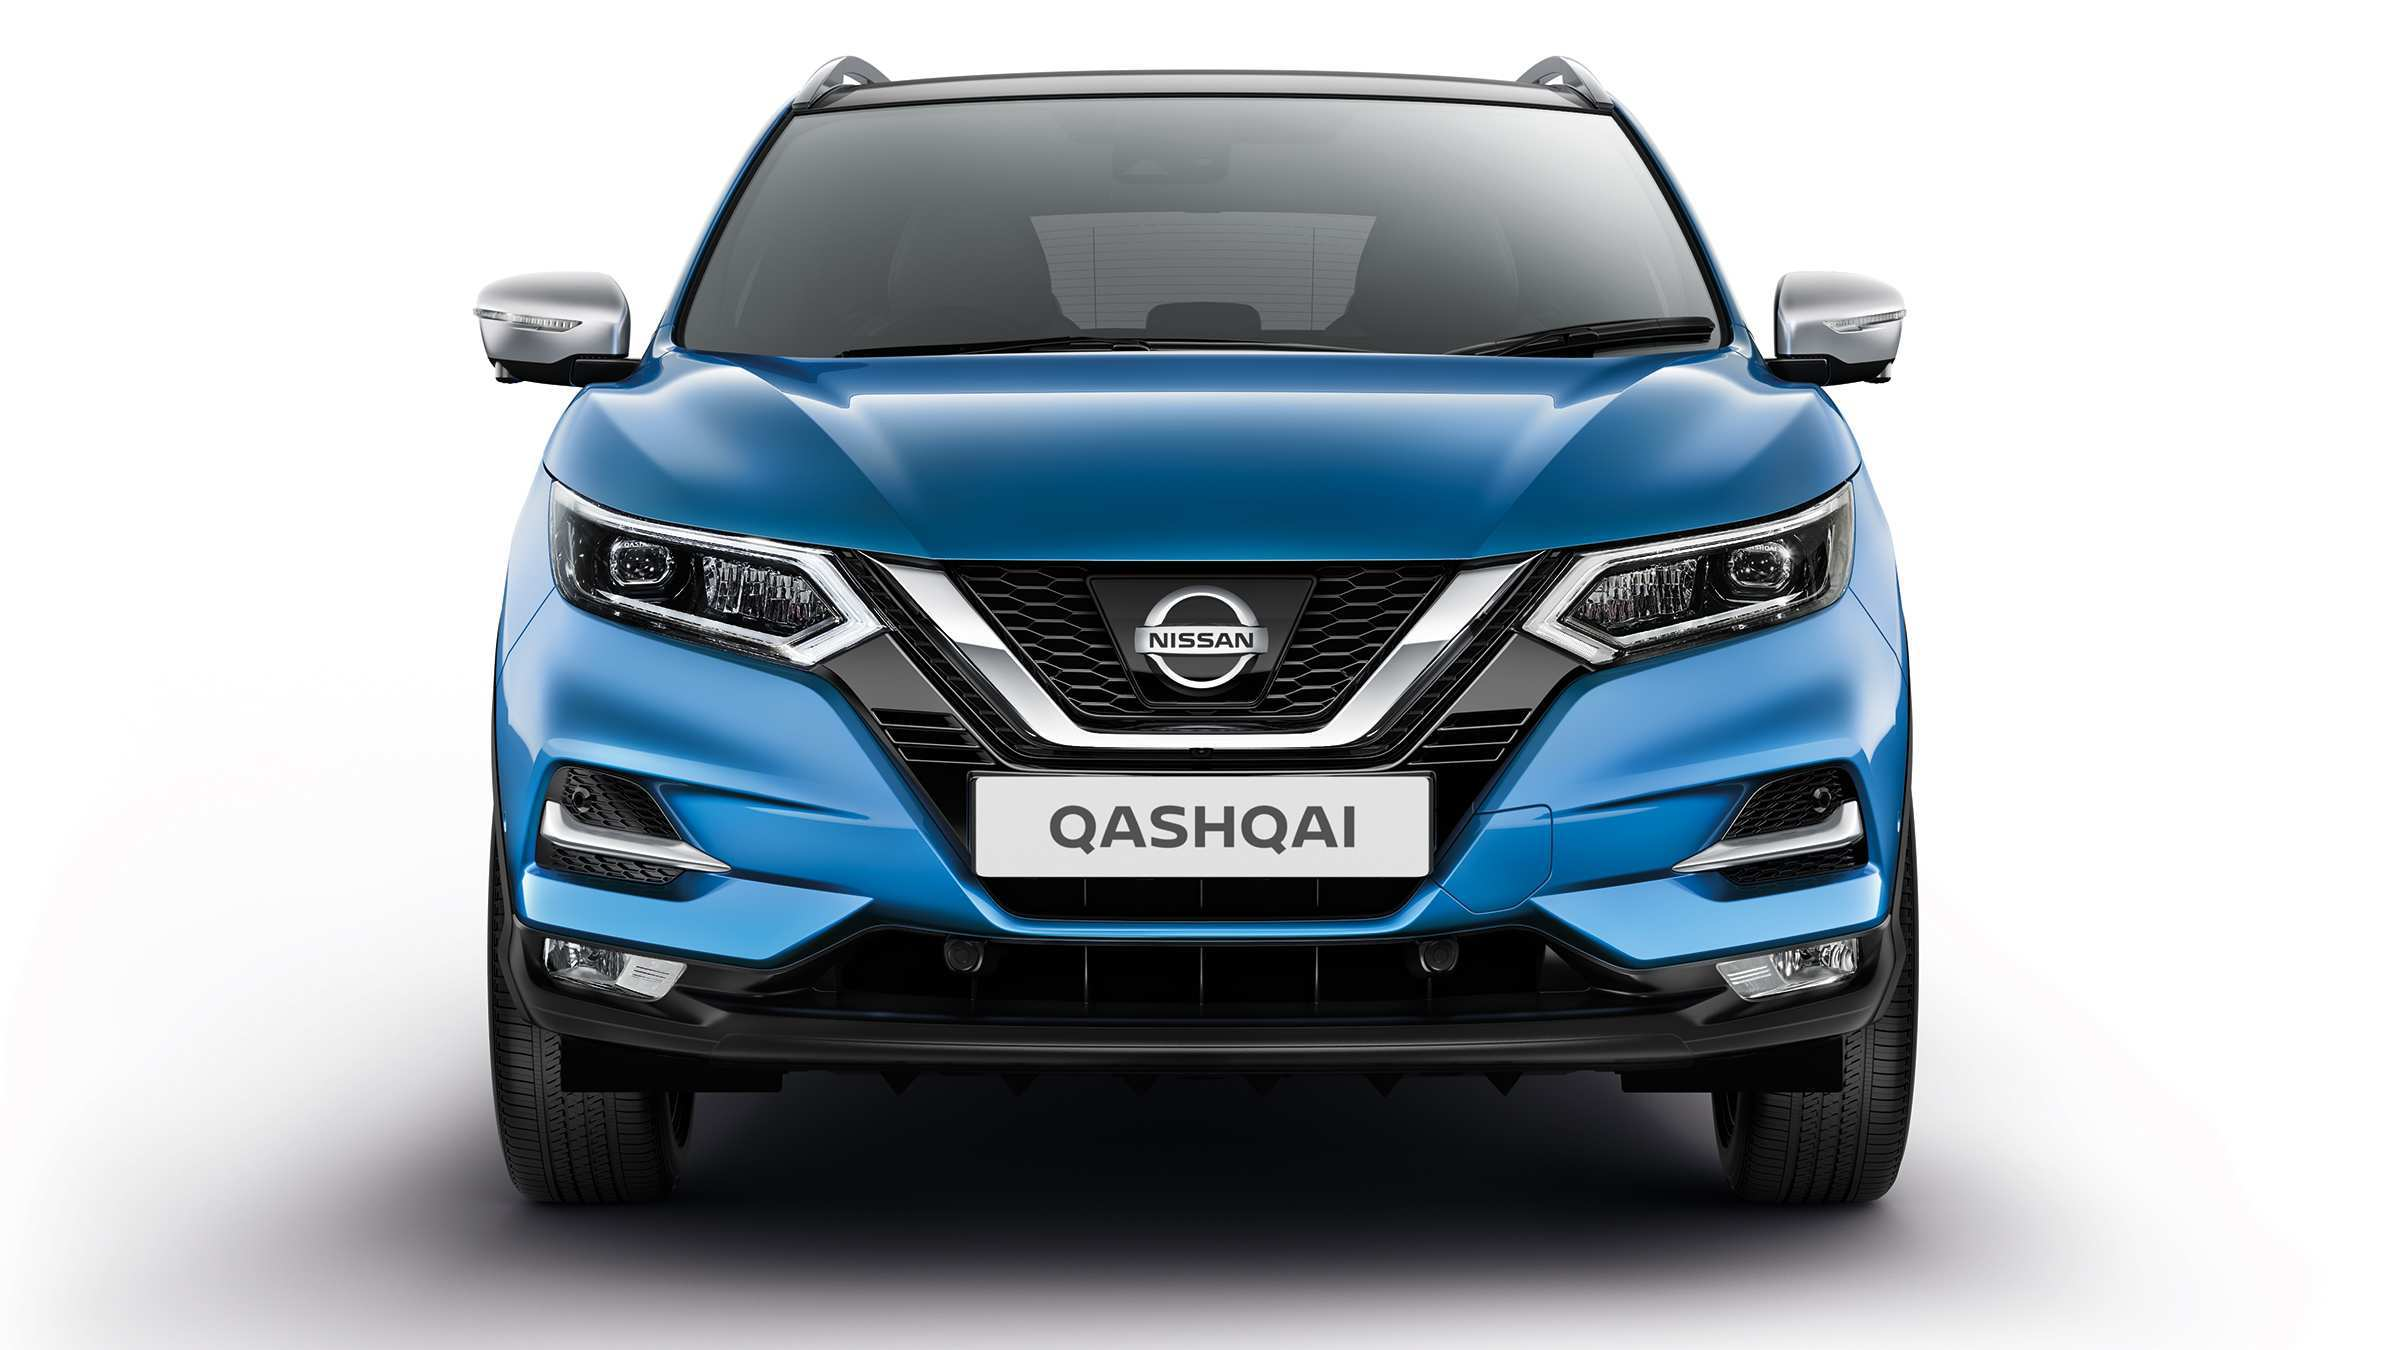 57 Gallery of Nissan Qashqai 2020 Colors Engine with Nissan Qashqai 2020 Colors